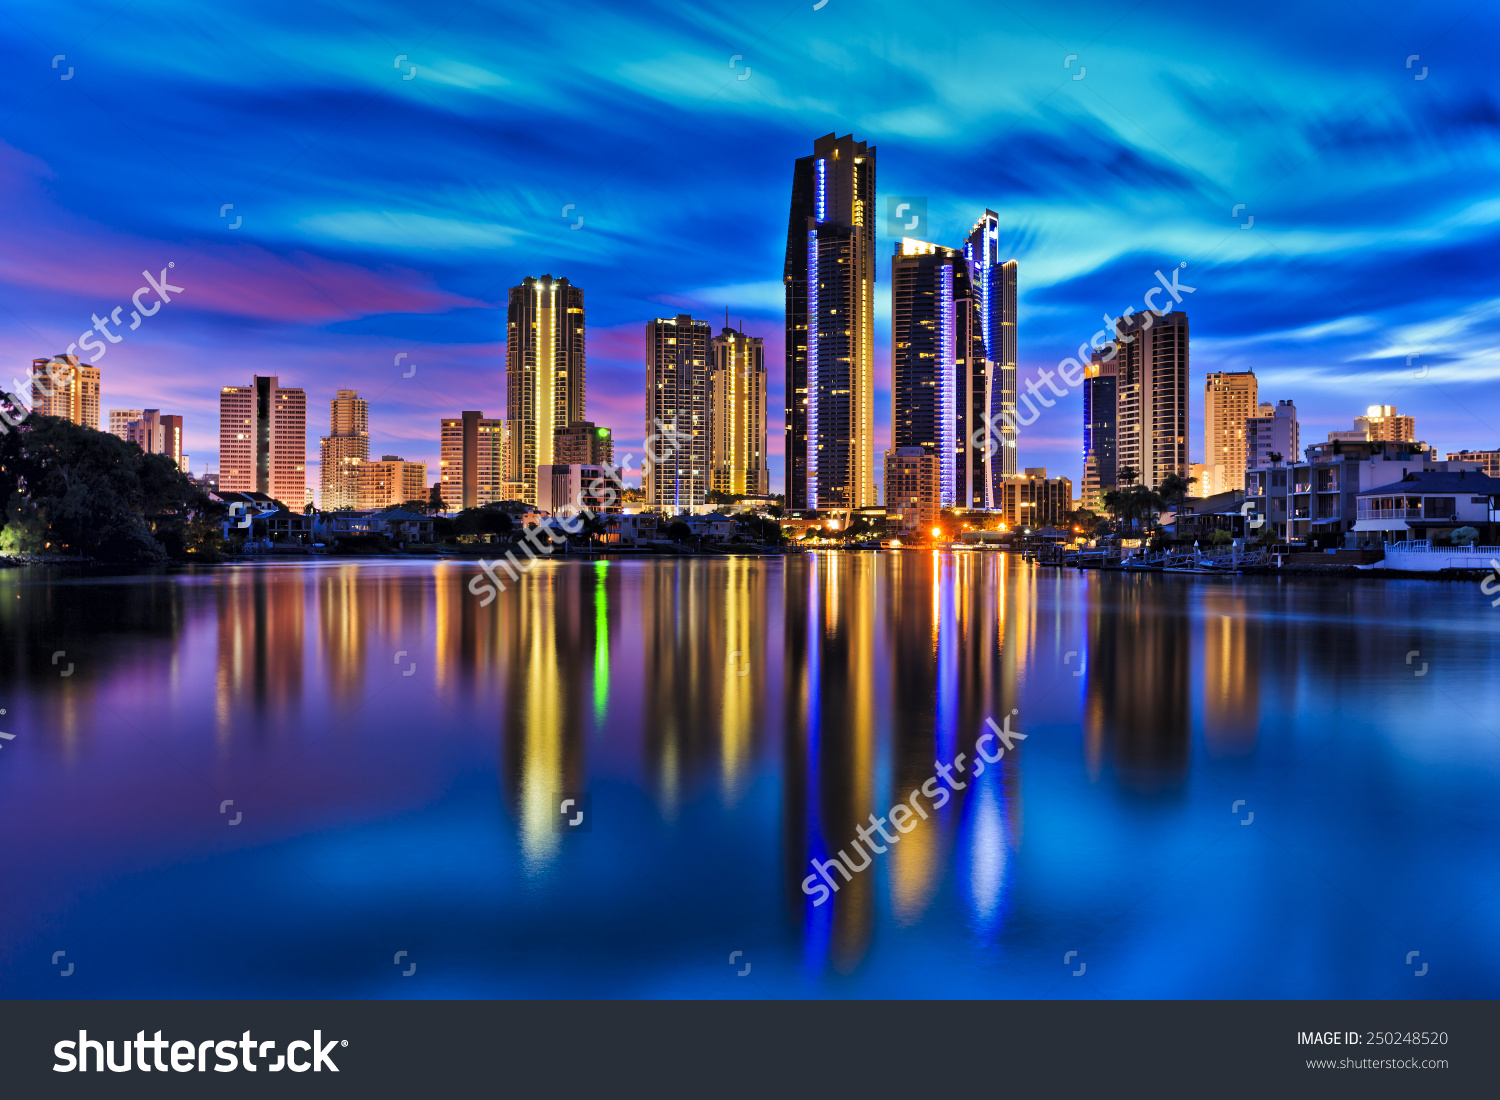 Australia Gold Coast Surfers Paradise City Stock Photo 250248520.